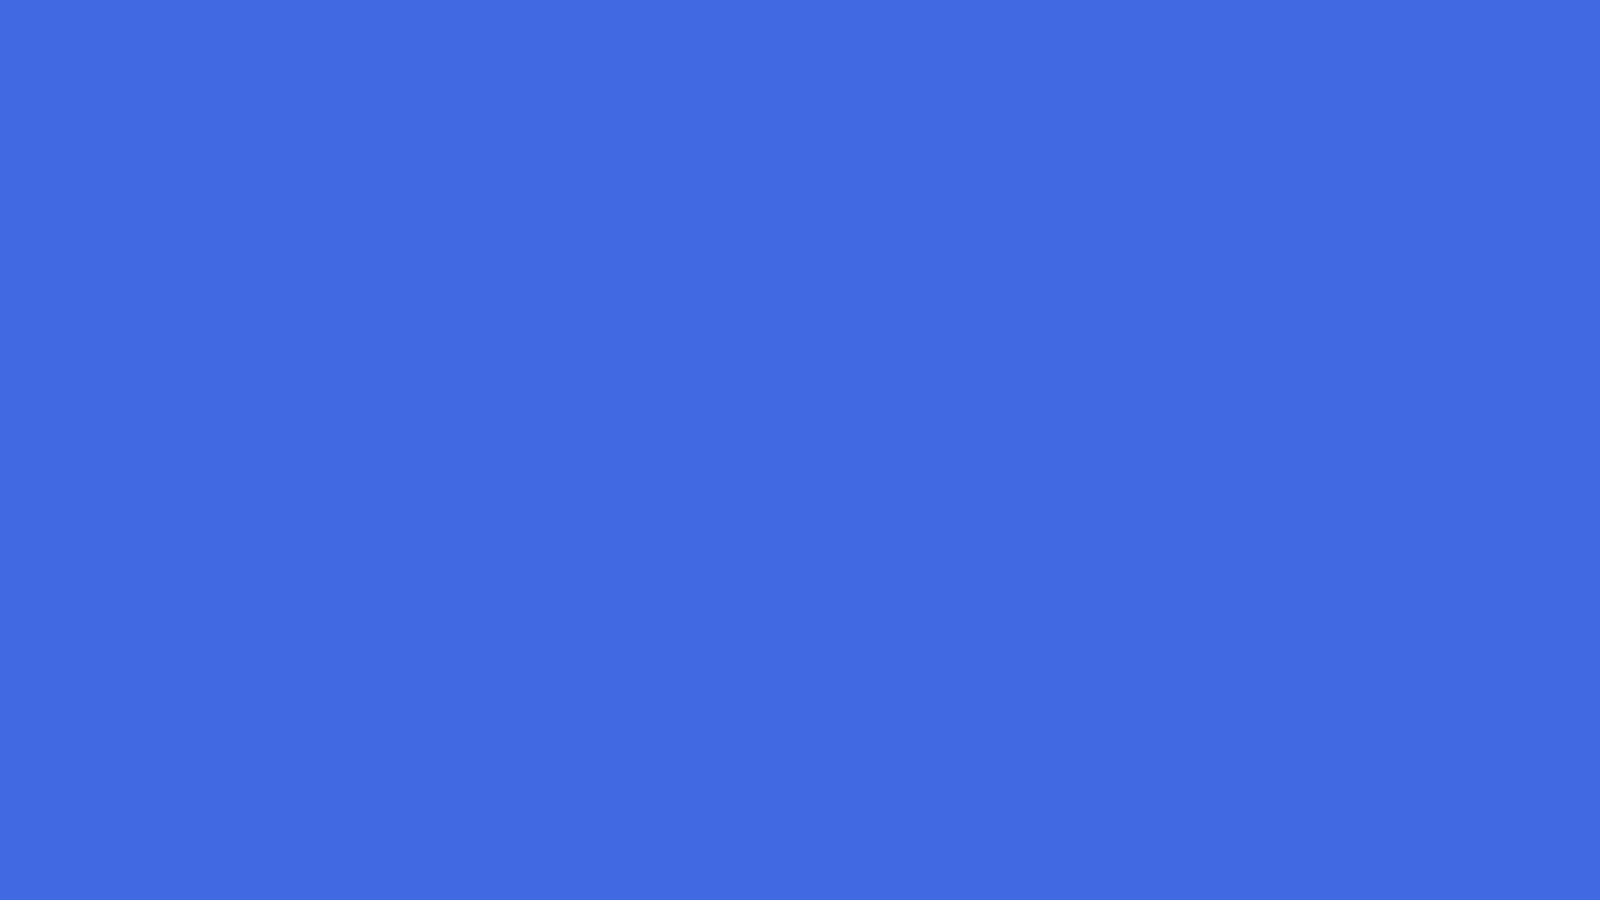 1600x900 Royal Blue Web Solid Color Background